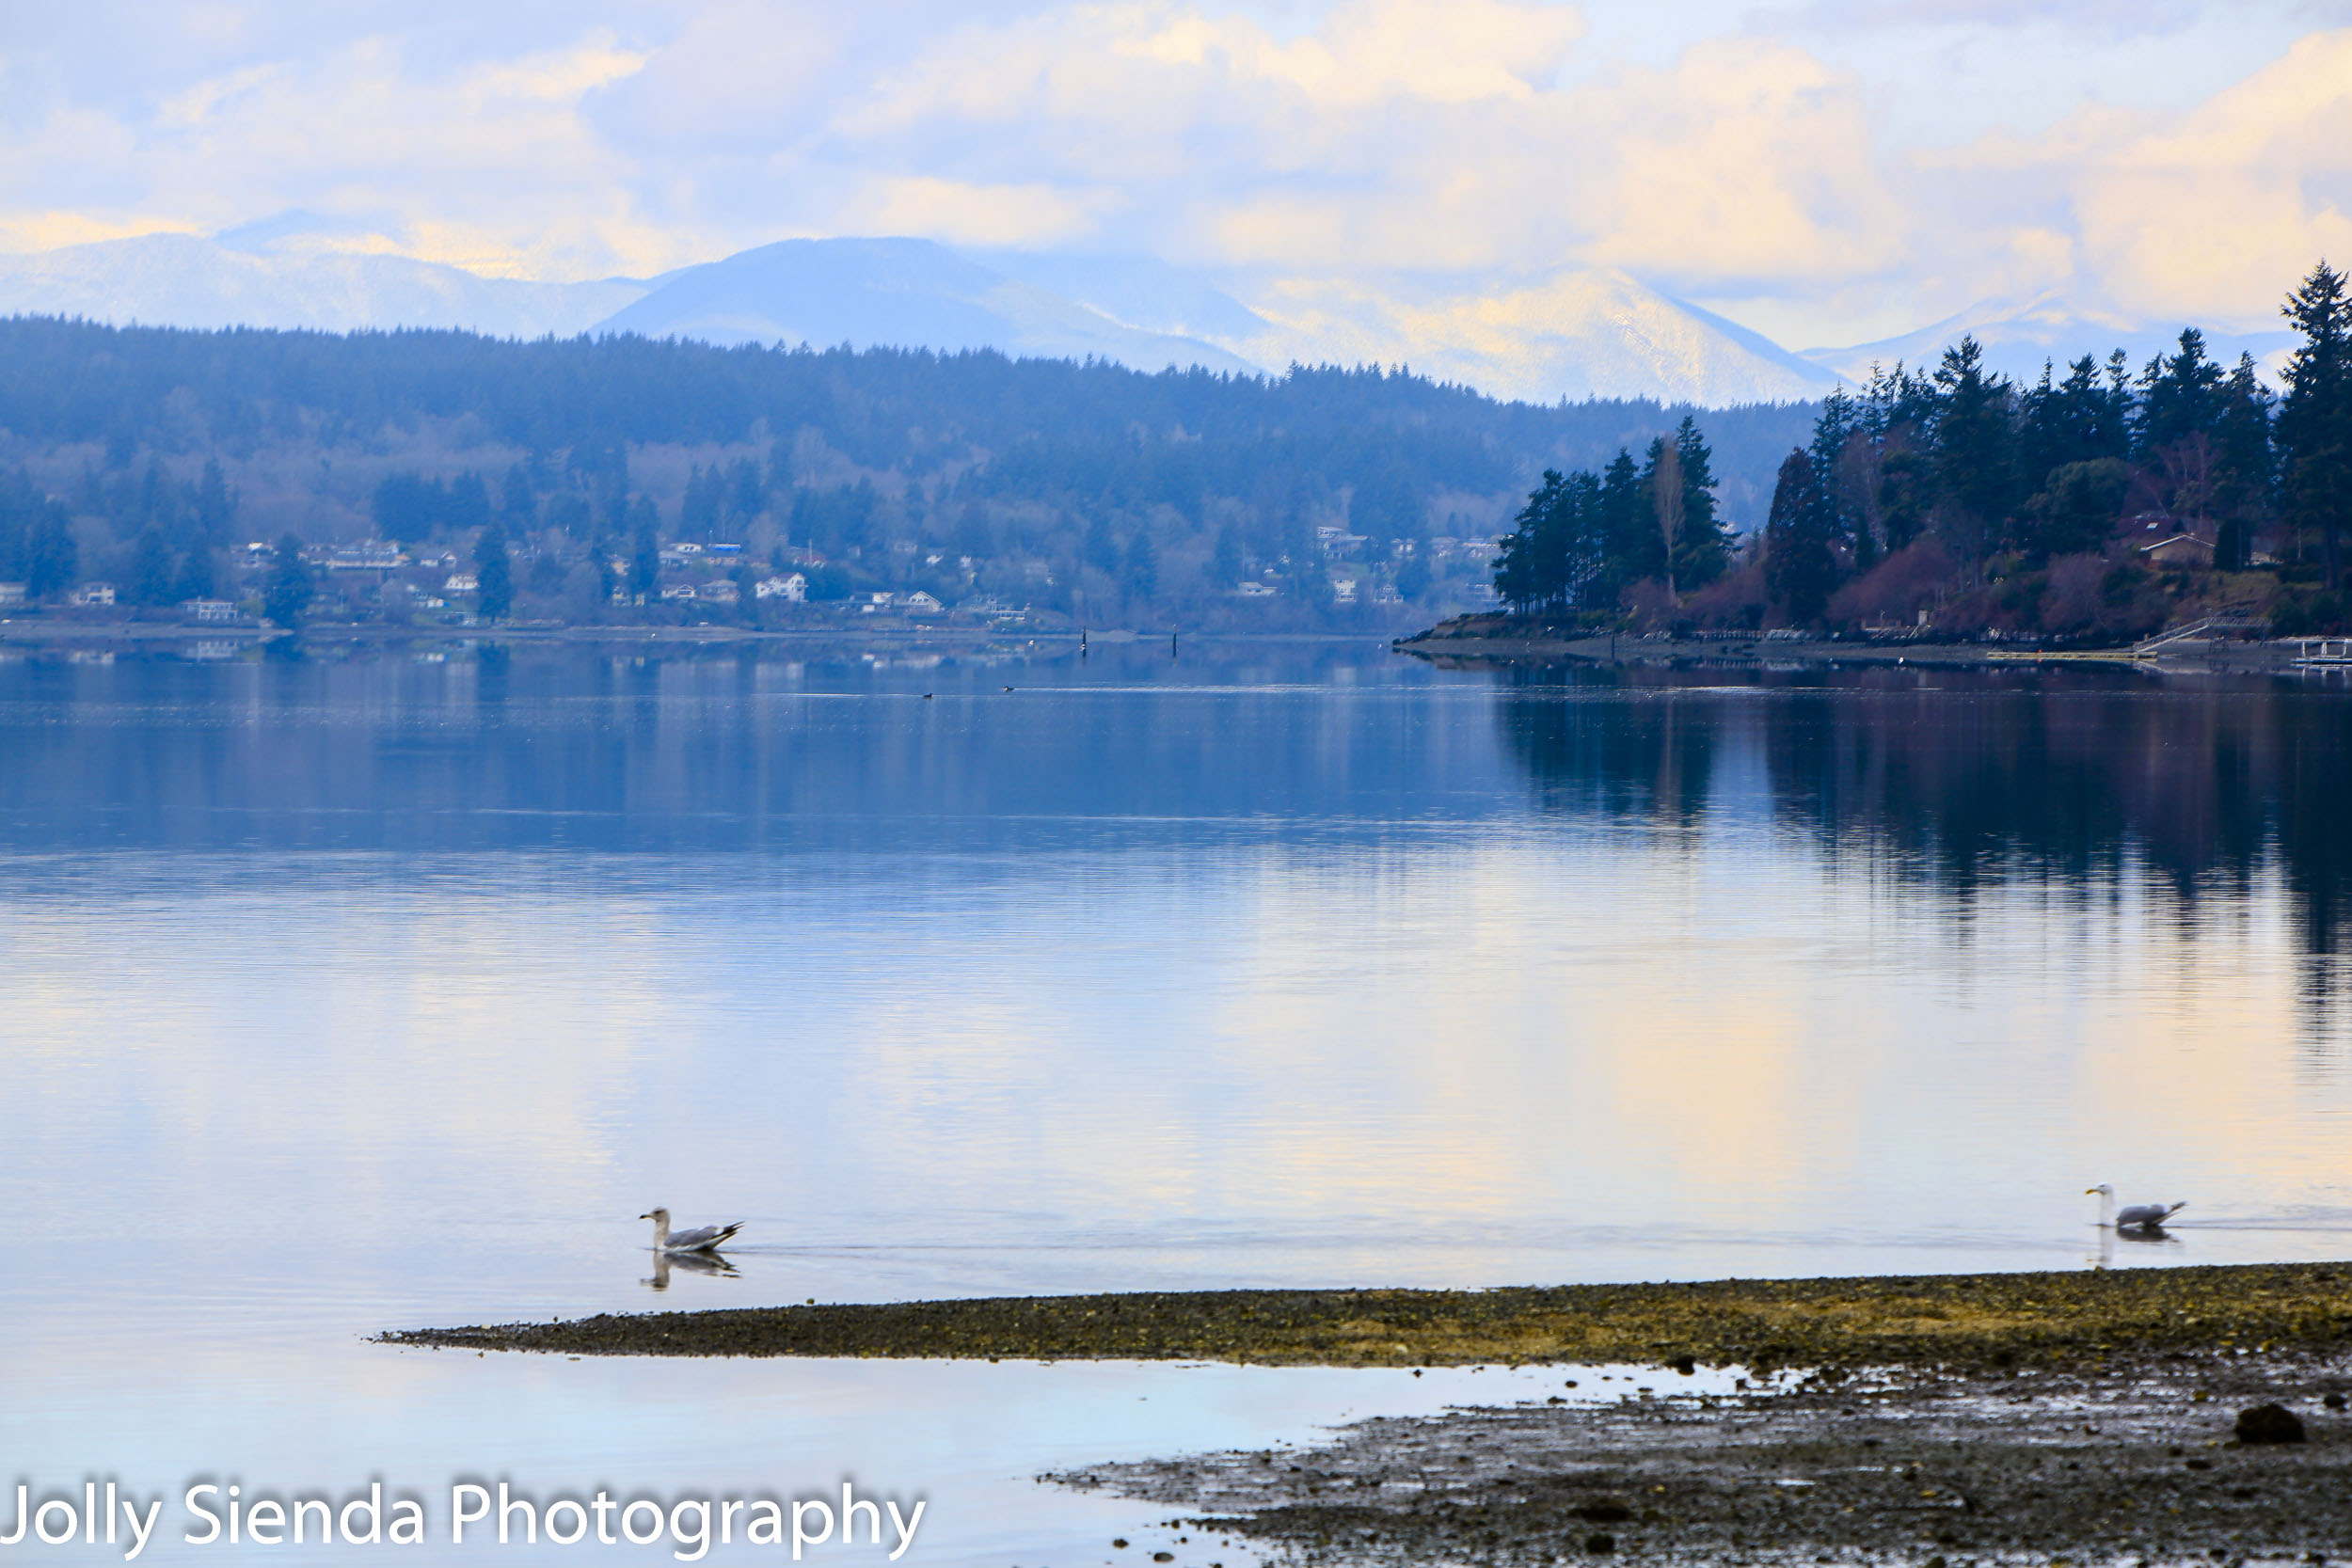 Seagulls glide on a calm bay with the Olympic Mountains in the b